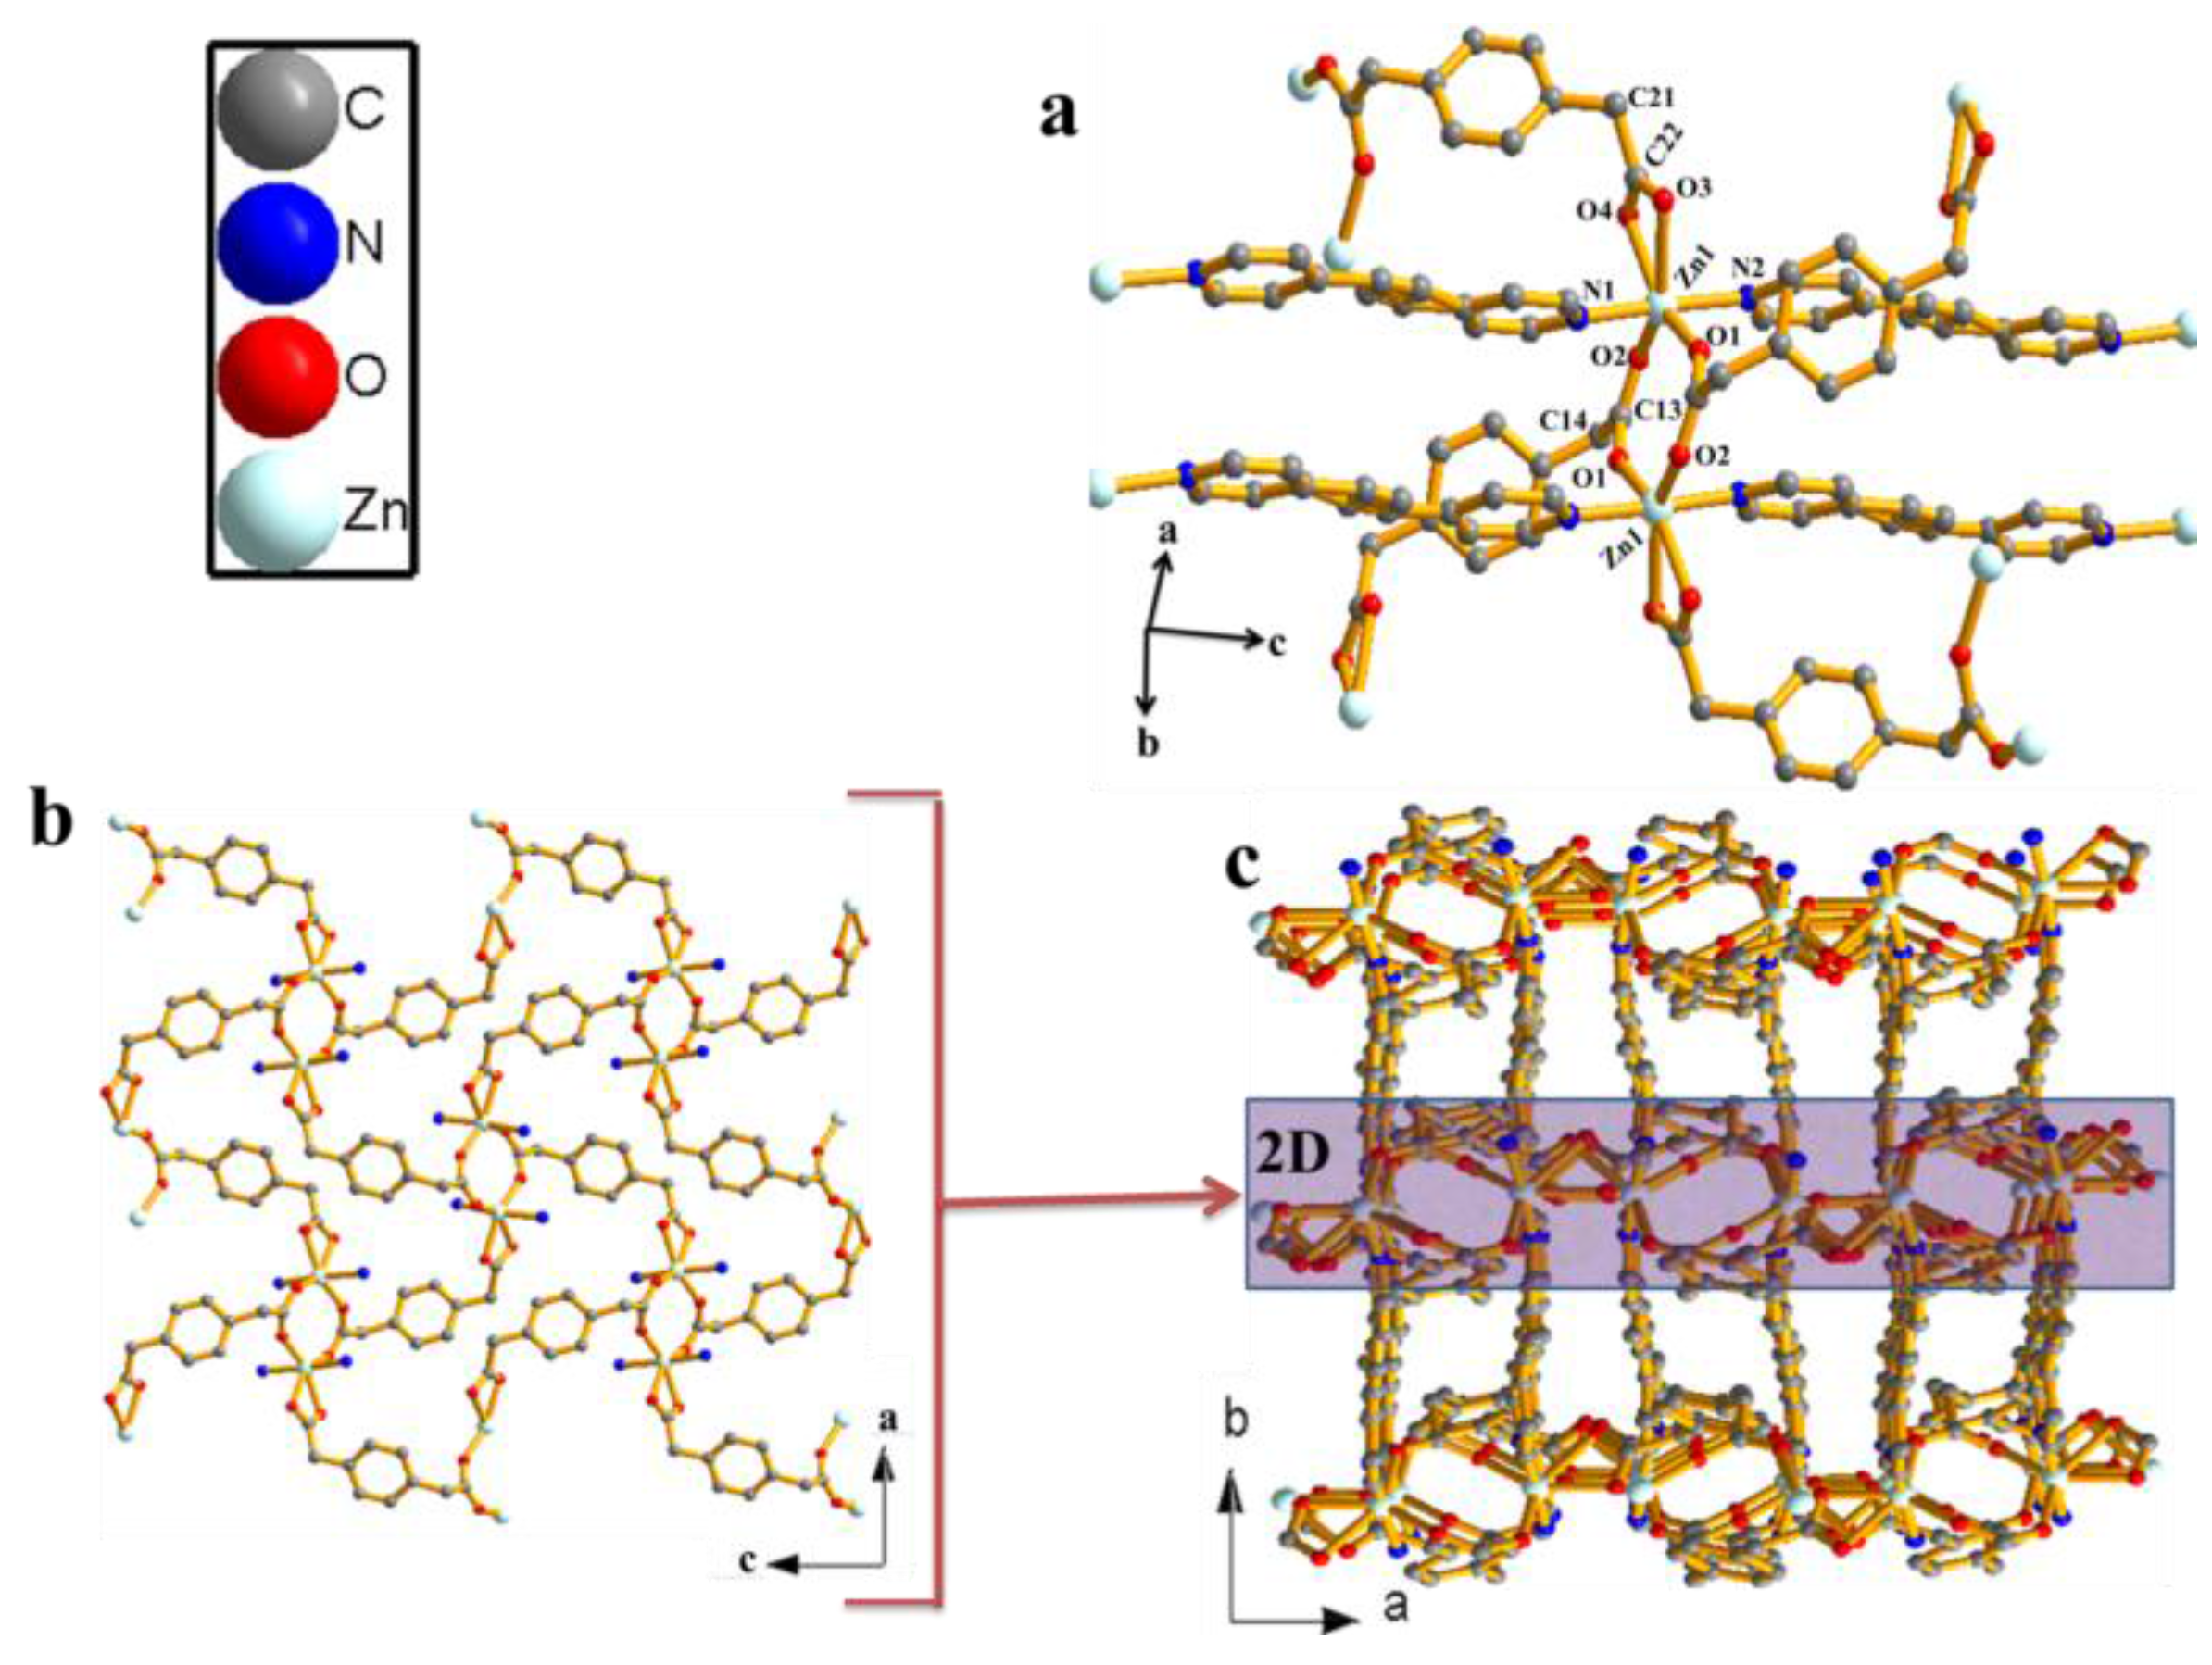 synthesis of new coordination polymers or mofs Coordination polymer mofs synthesis by ball mill a significant number of new mof structures synthesized every year confirms this.